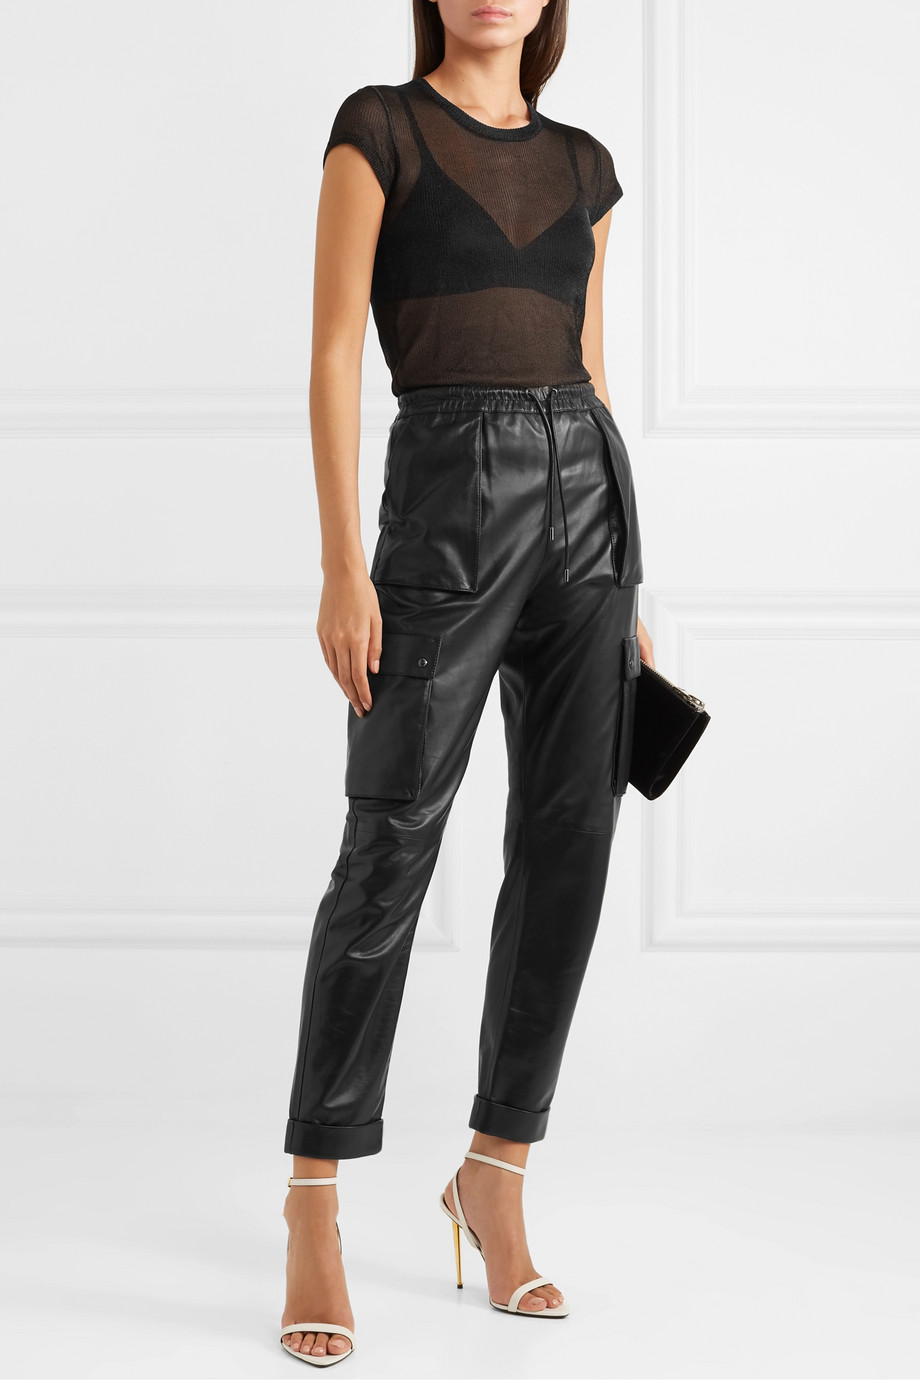 TOM FORD Metallic knitted top